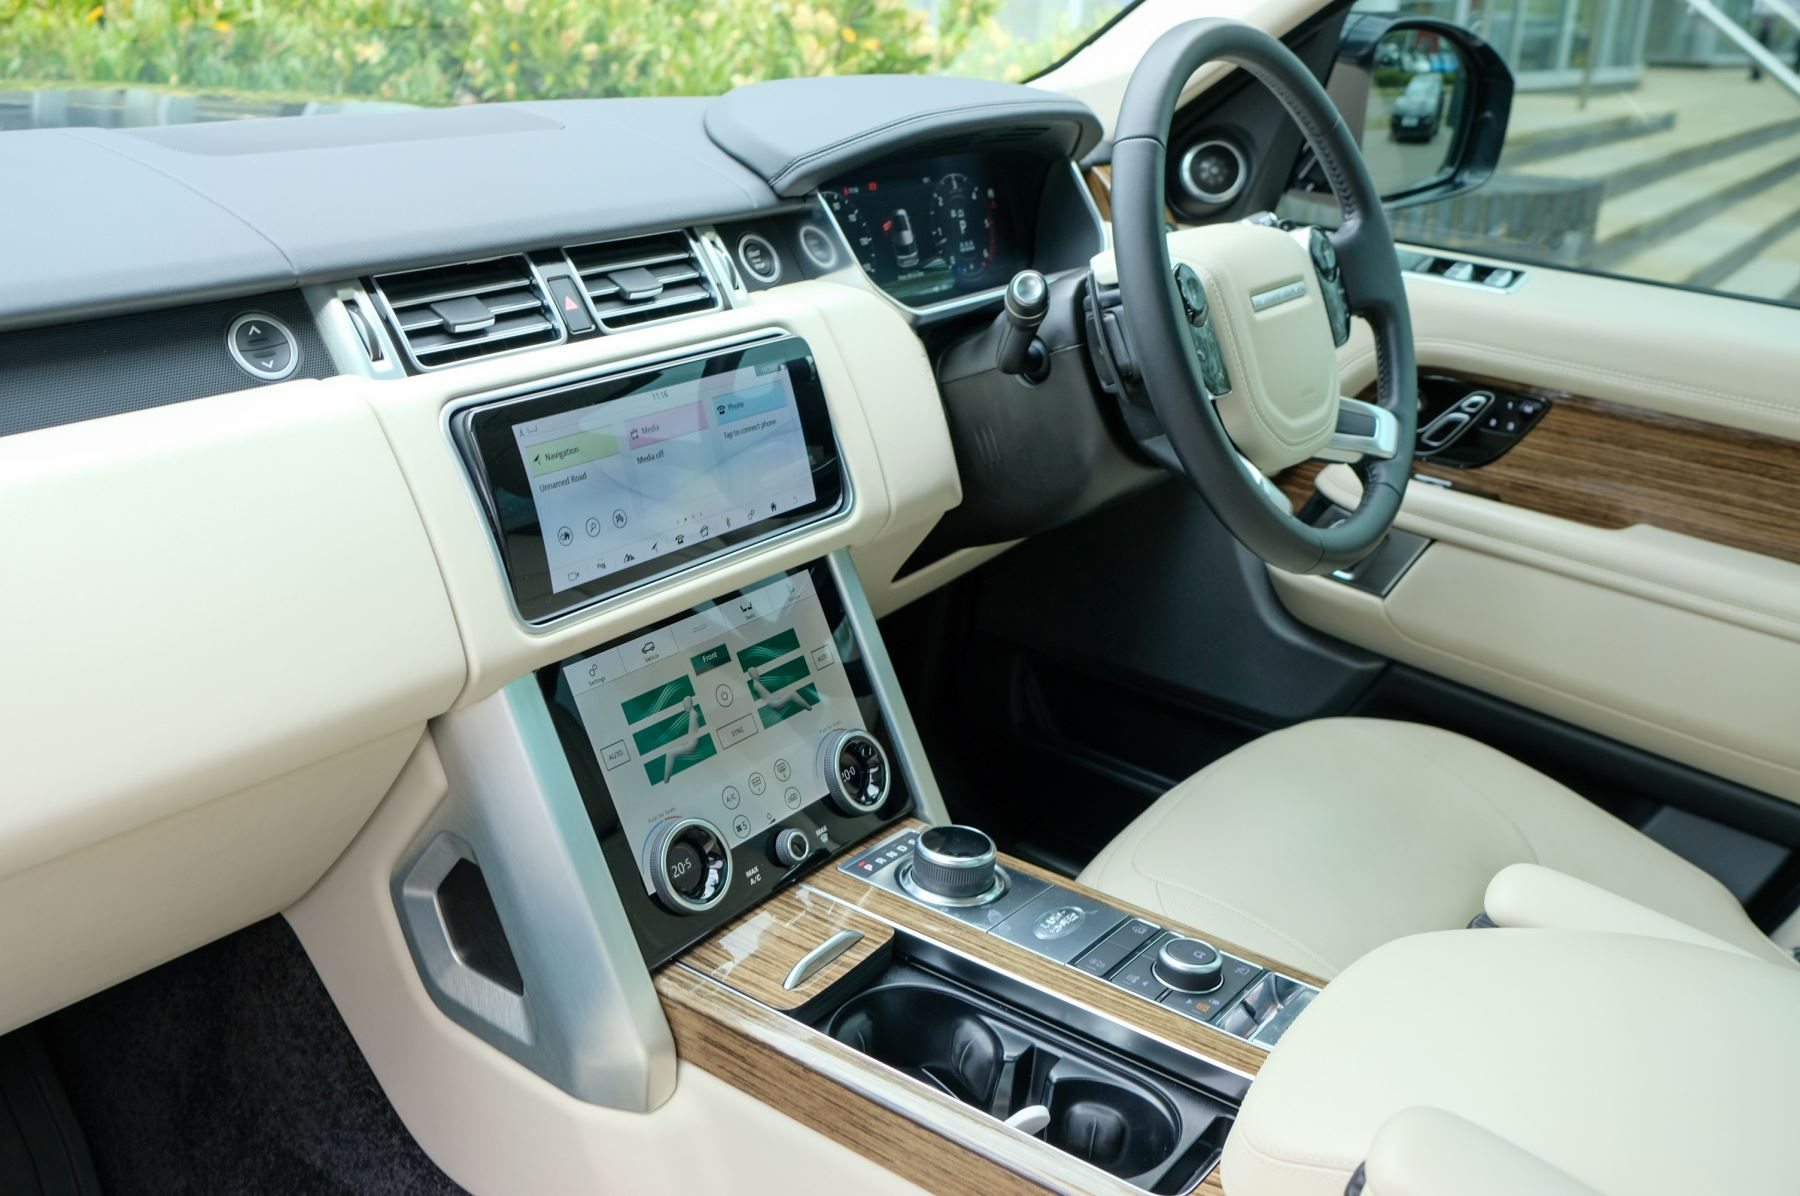 Land Rover Range Rover 3.0 SDV6 Vogue SE - Panoramic Roof - Privacy Glass - 21 inch Alloys image 21